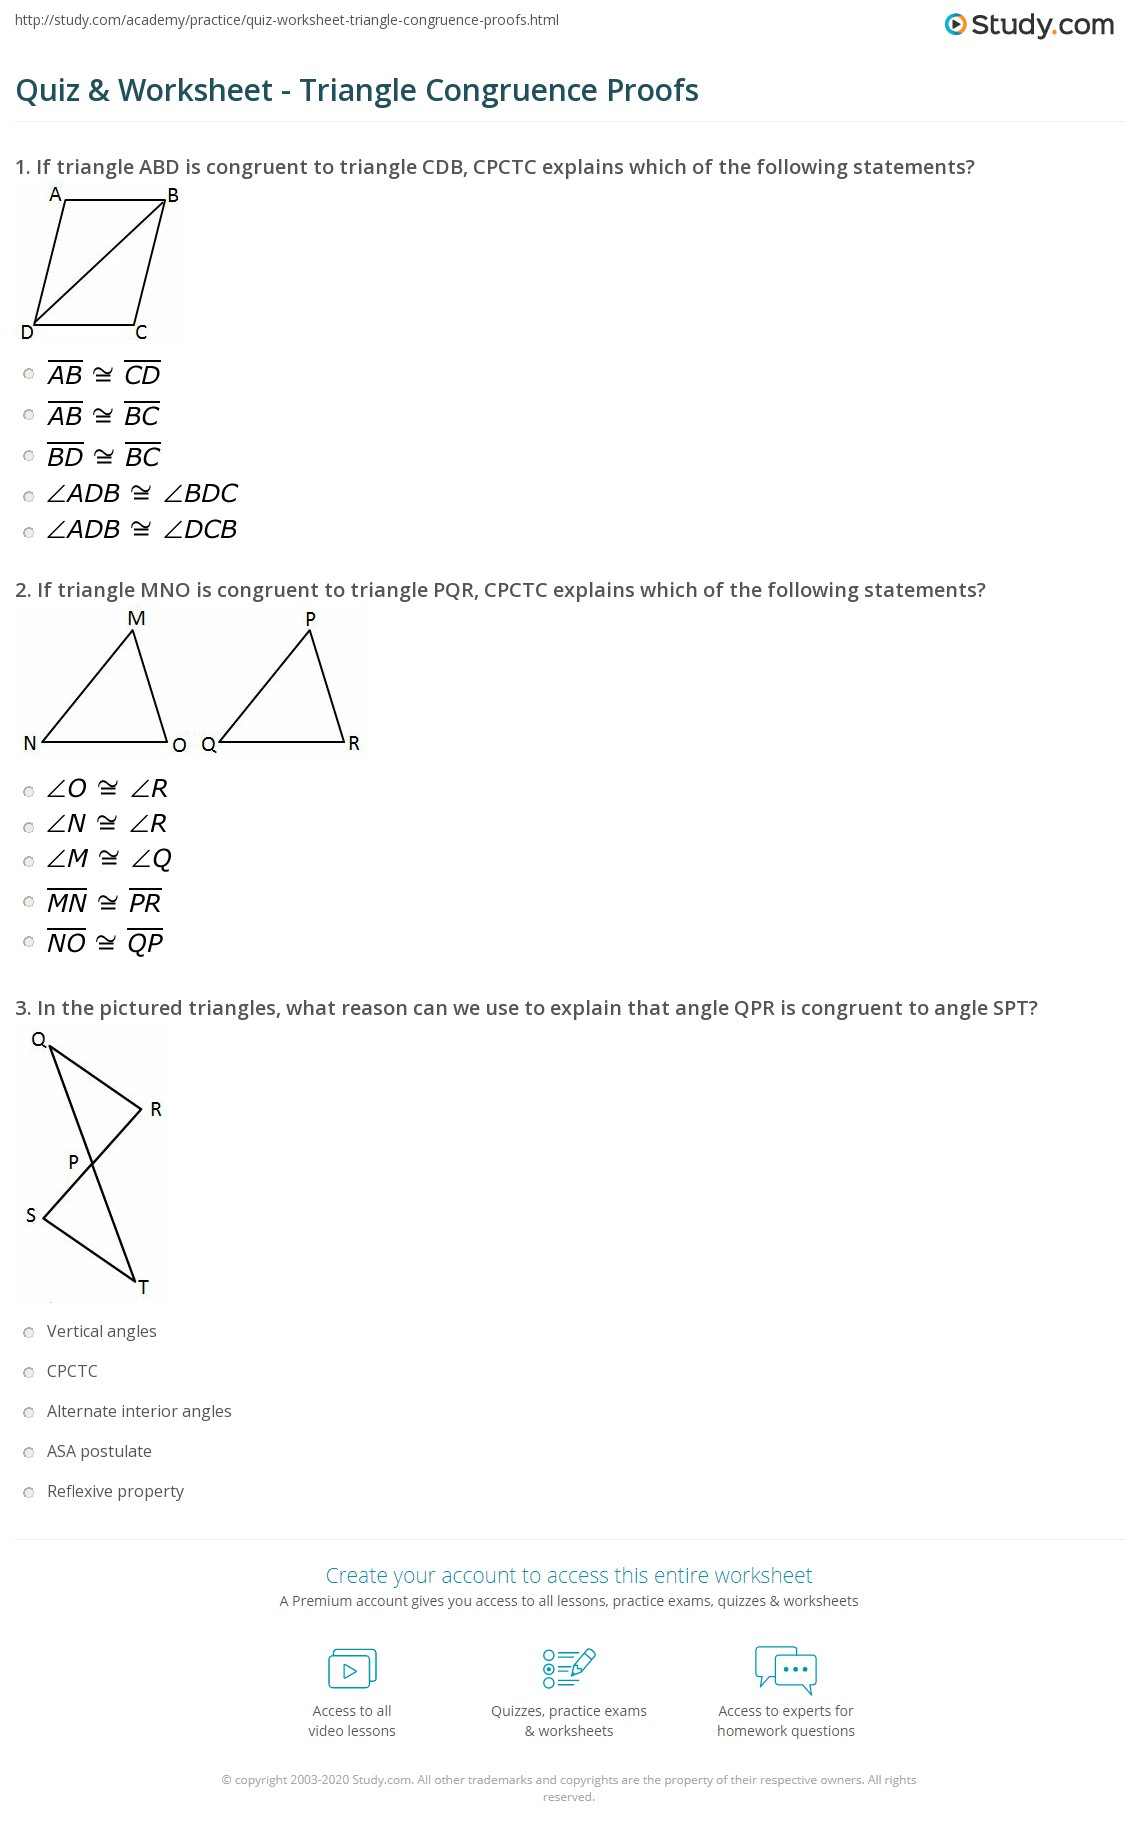 Congruence Proofs: Corresponding Parts of Congruent Triangles